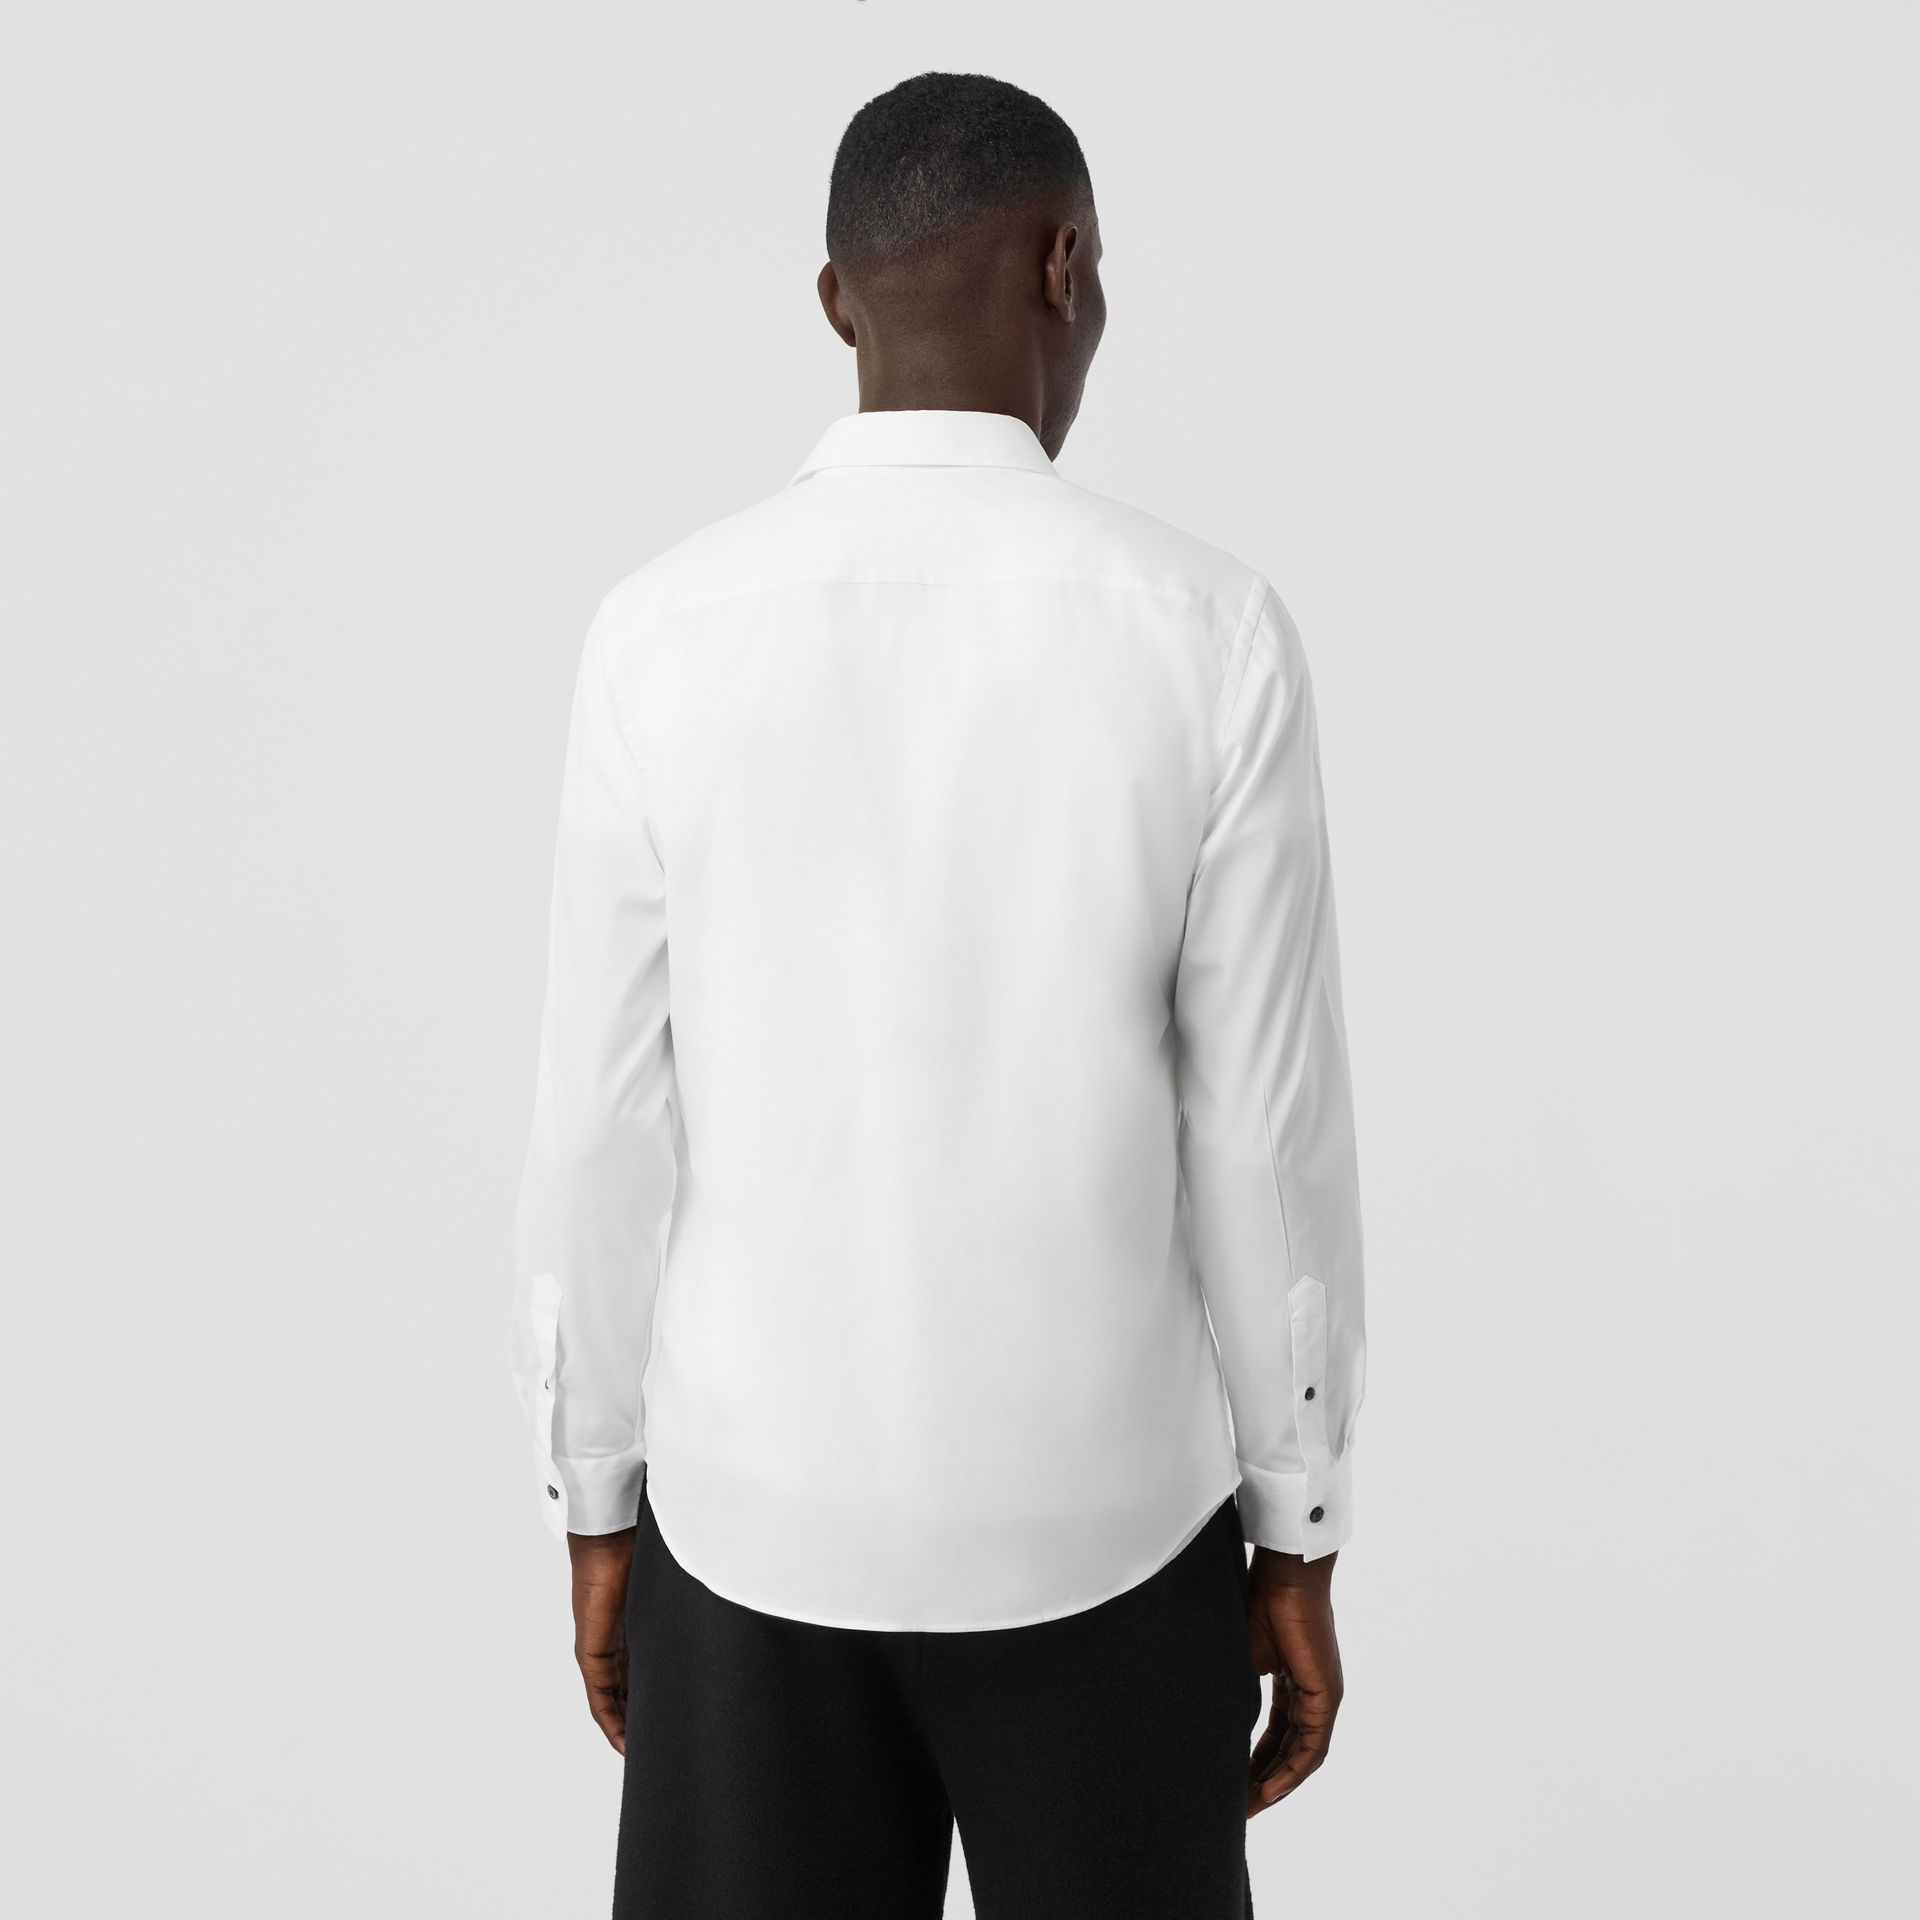 Monogram Motif Stretch Cotton Poplin Shirt in White - Men | Burberry United Kingdom - gallery image 2